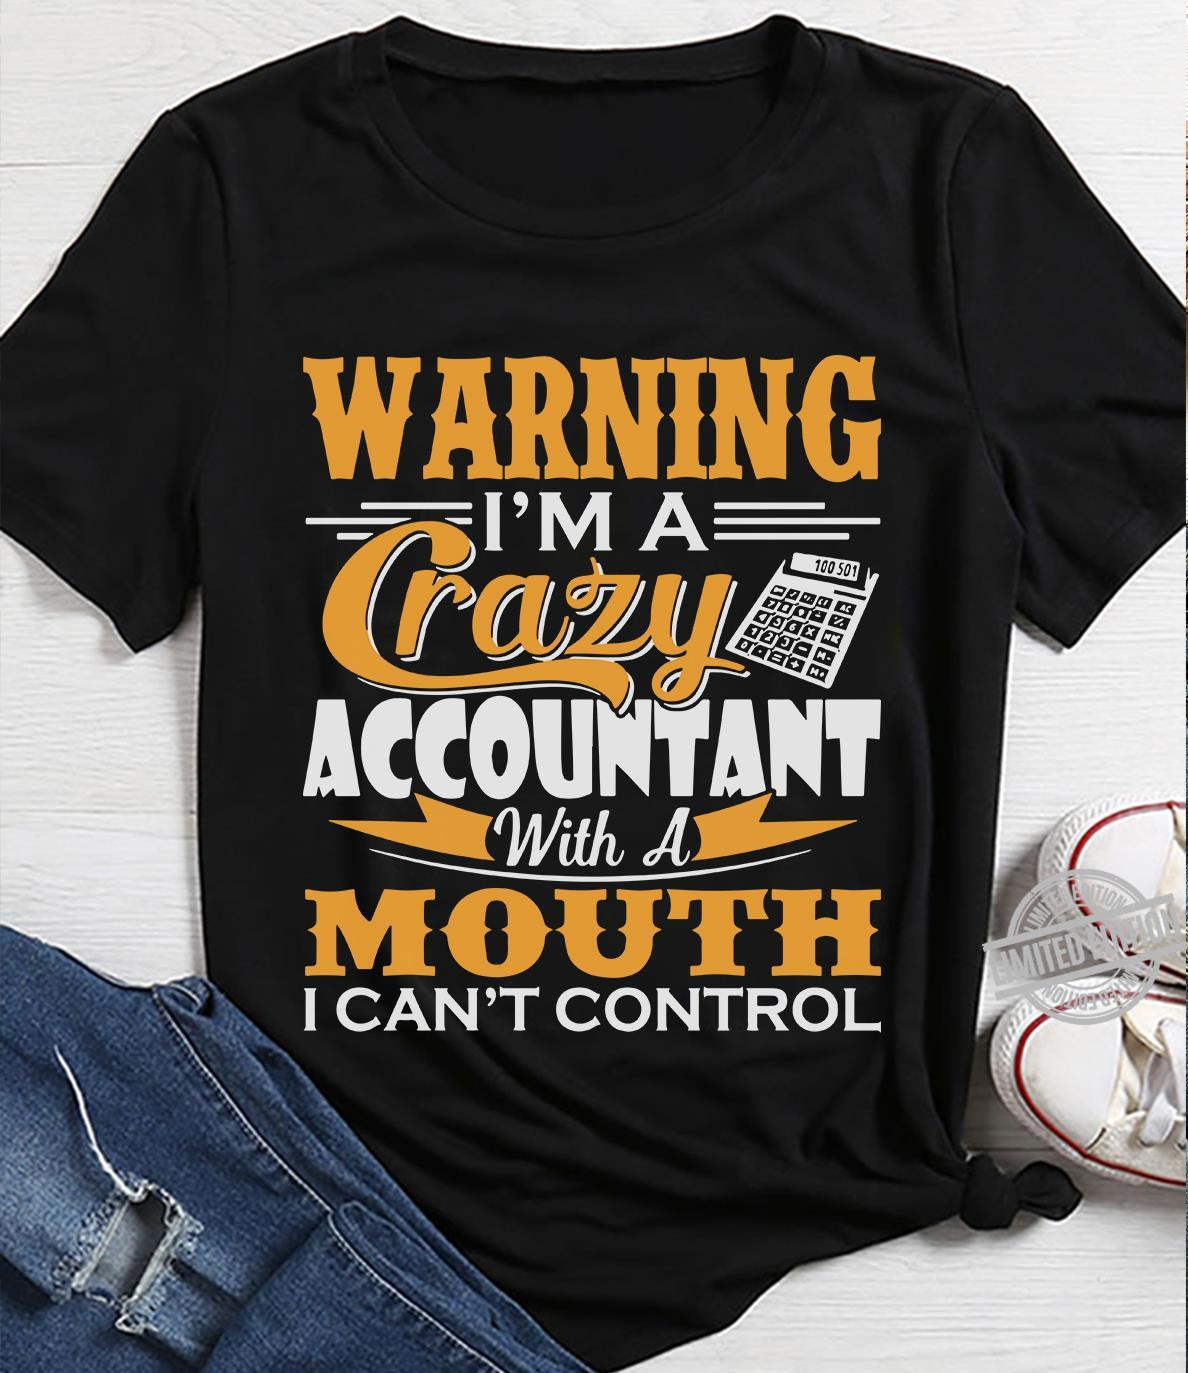 Warning I'm A Crazy Accountant With A Mouth I Can't Control Shirt